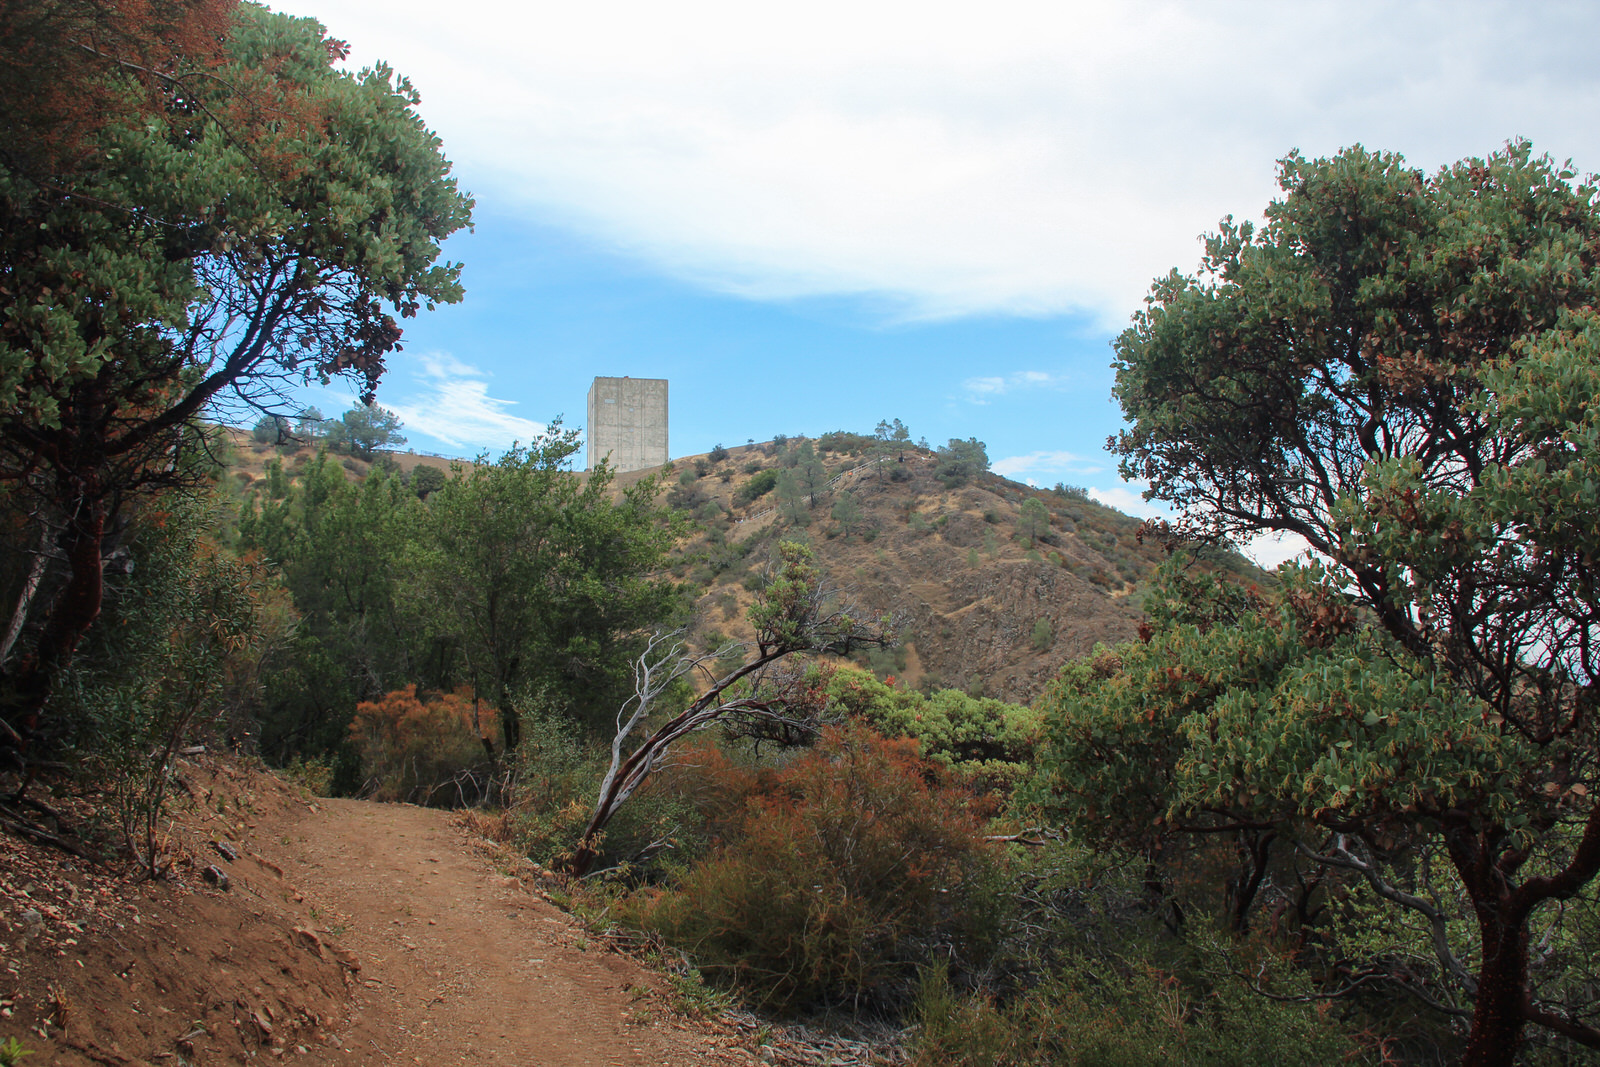 photo: Mt_Umunhum Trail_Approaching _the_Summit